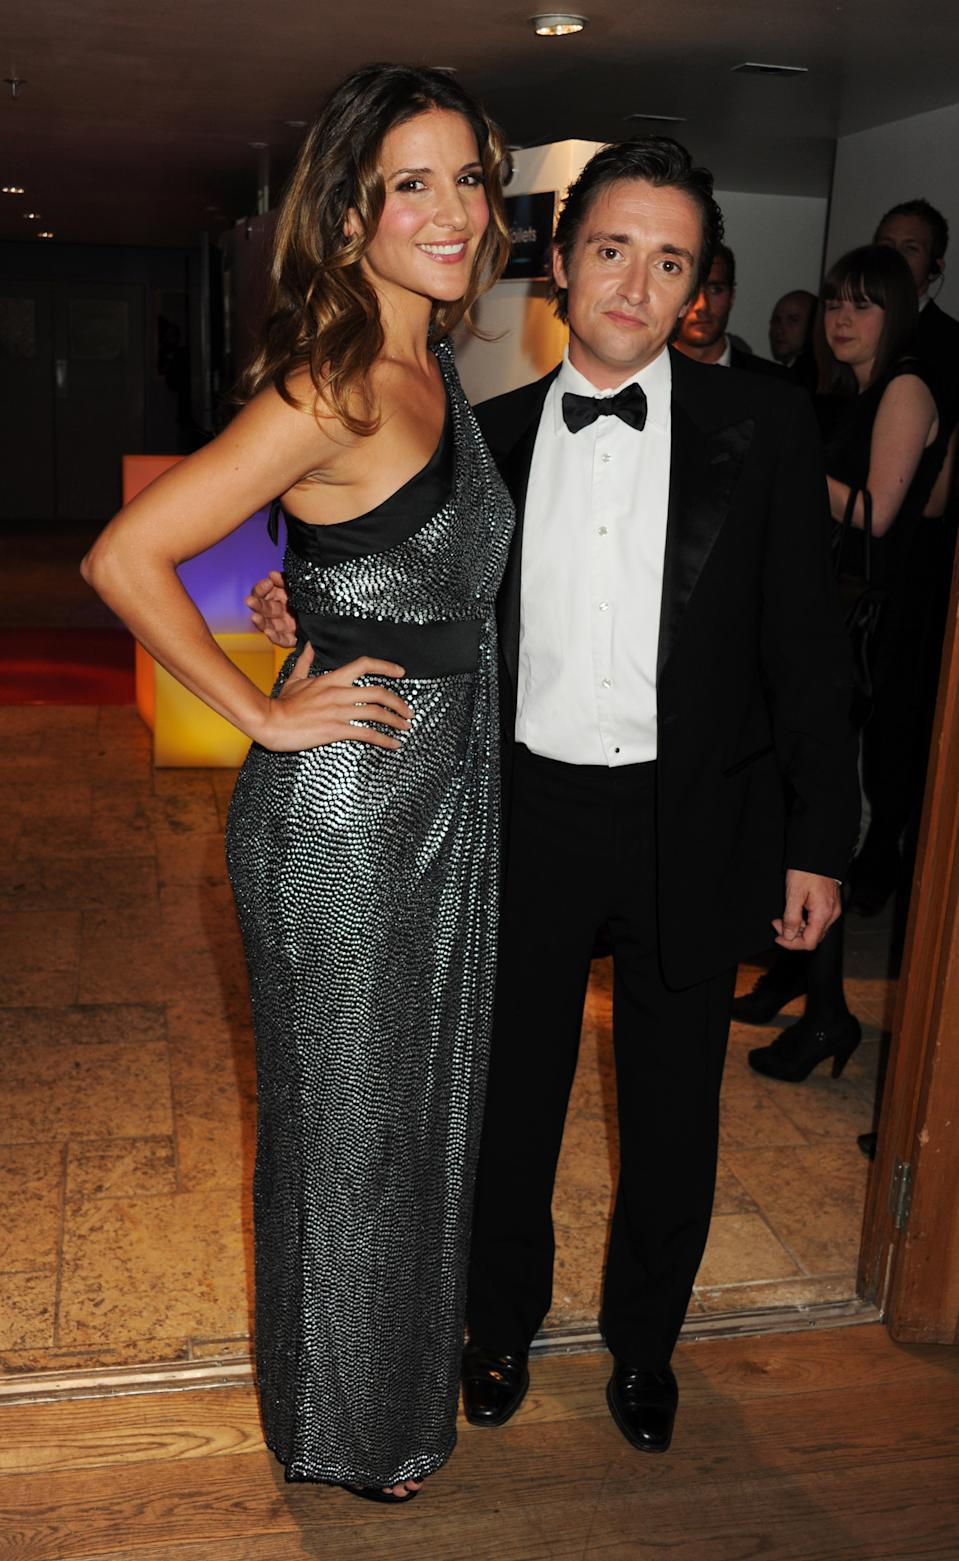 Amanda Byram and Richard Hammond attend The Carphone Warehouse Appys Awards 2011 at Vinopolis on April 11, 2011 in London, England. (Photo by Dave M. Benett/Getty Images)